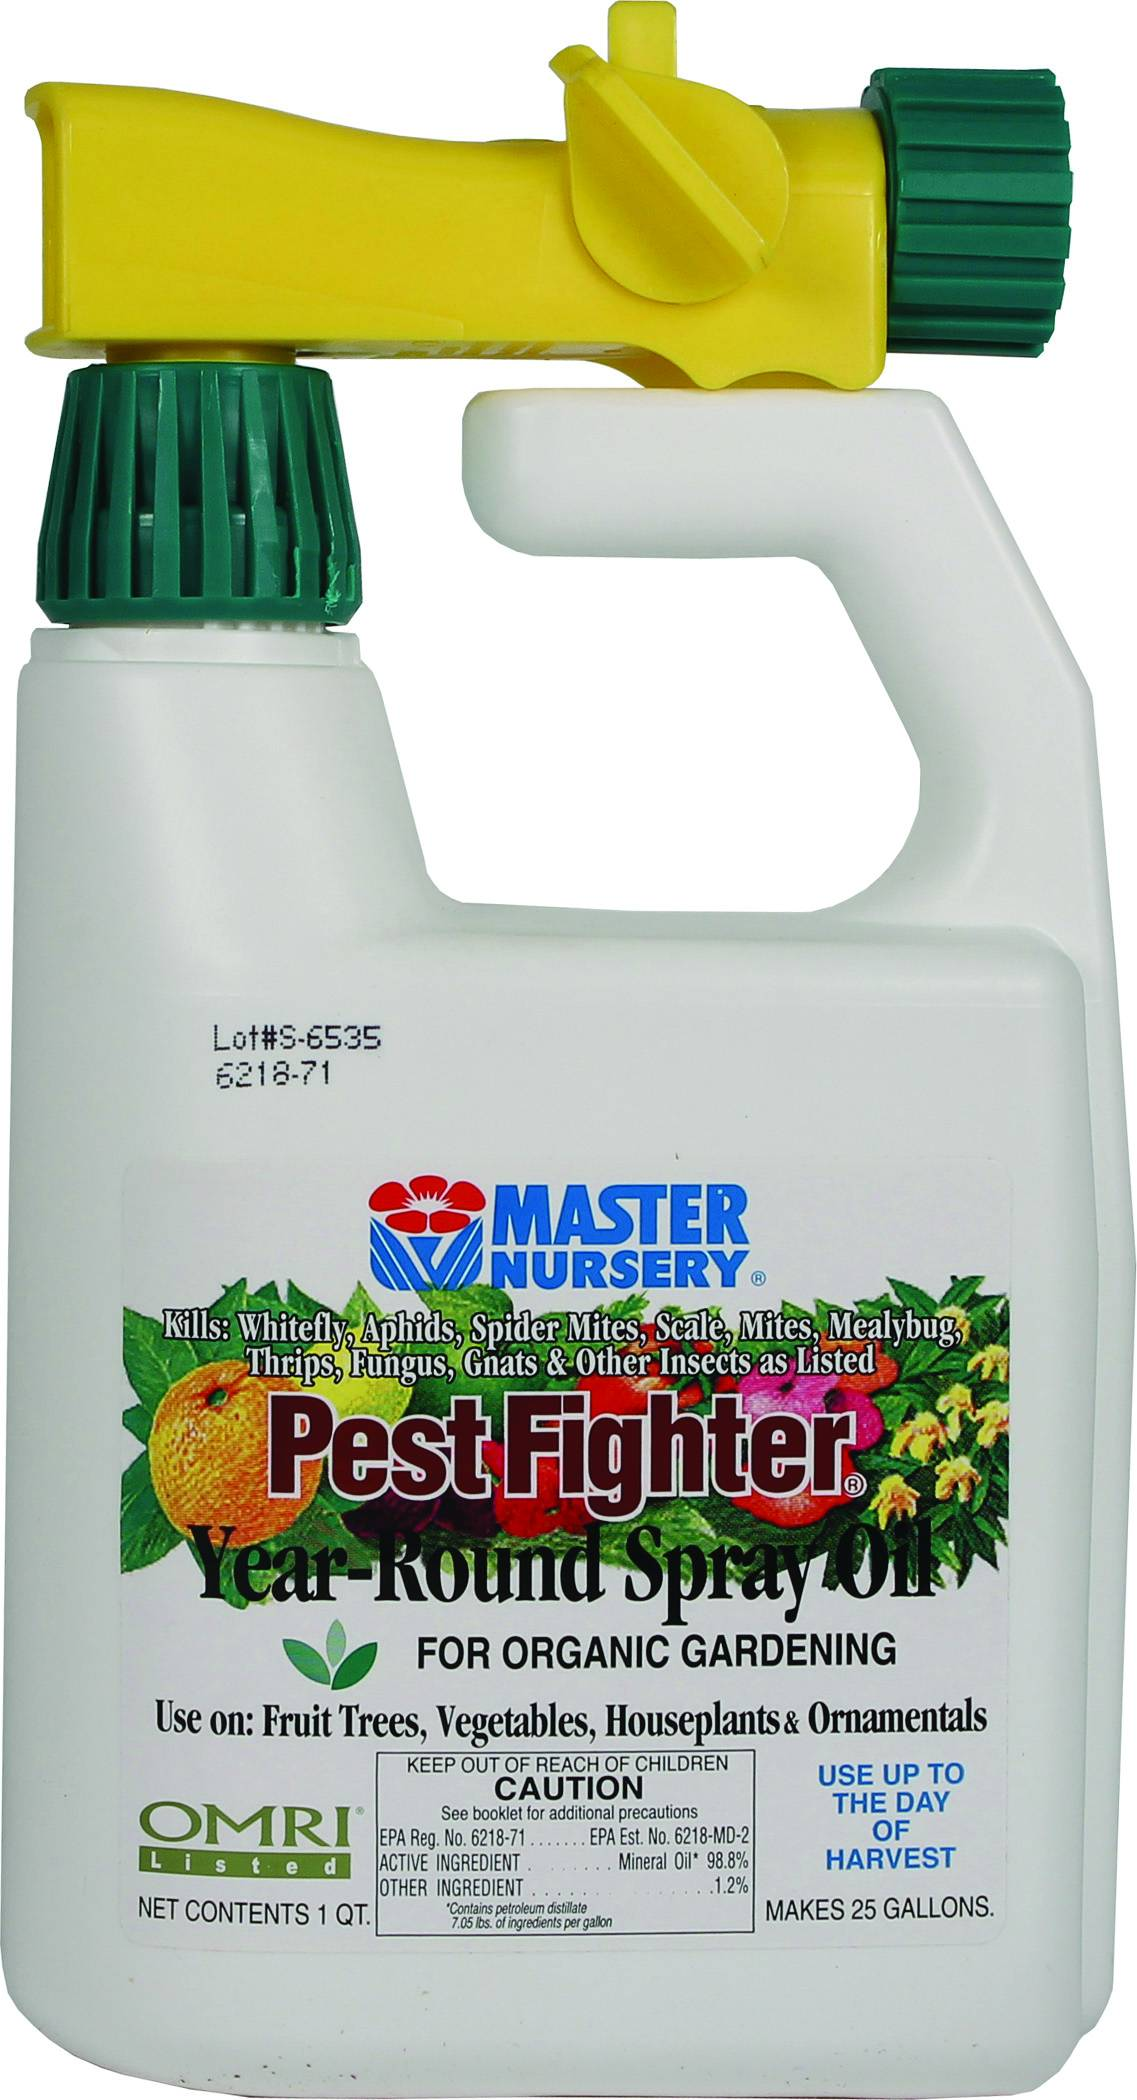 Pest Fighter Pest Fighter Year-Round Sprail Oil Ready To Spray